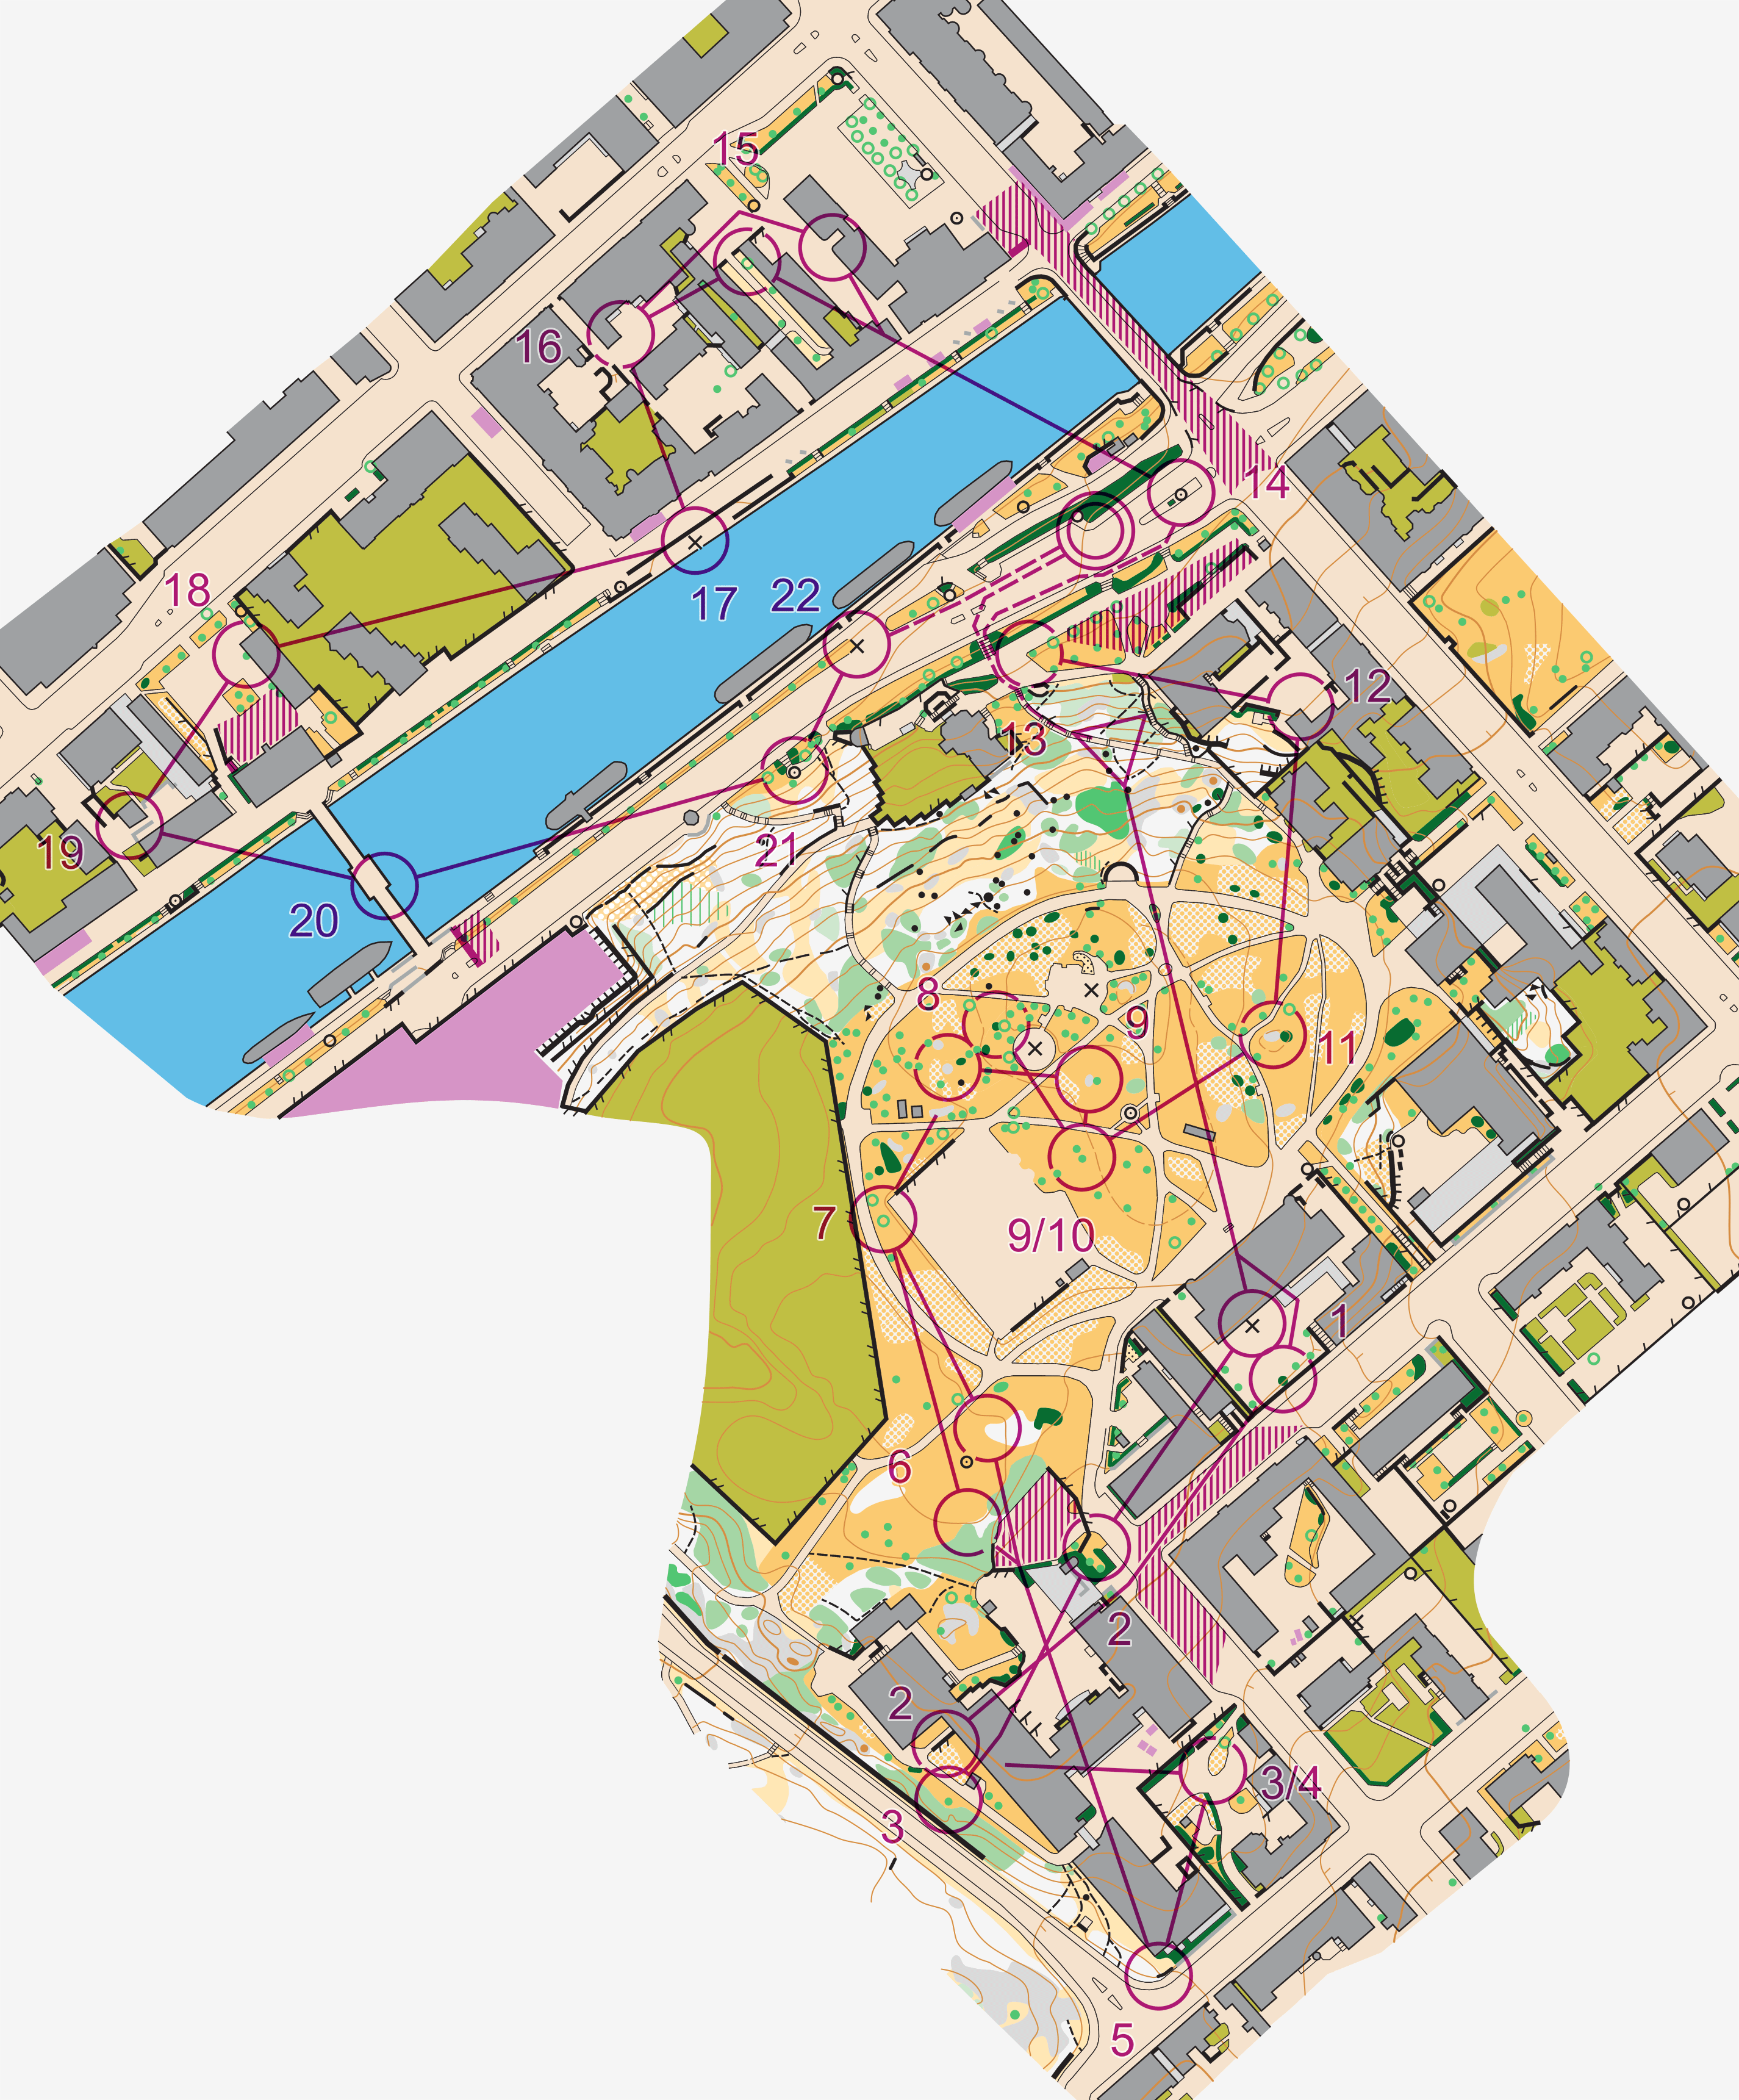 World cup sprint relay 4th leg may 24th 2017 orienteering map request map deleted gumiabroncs Gallery